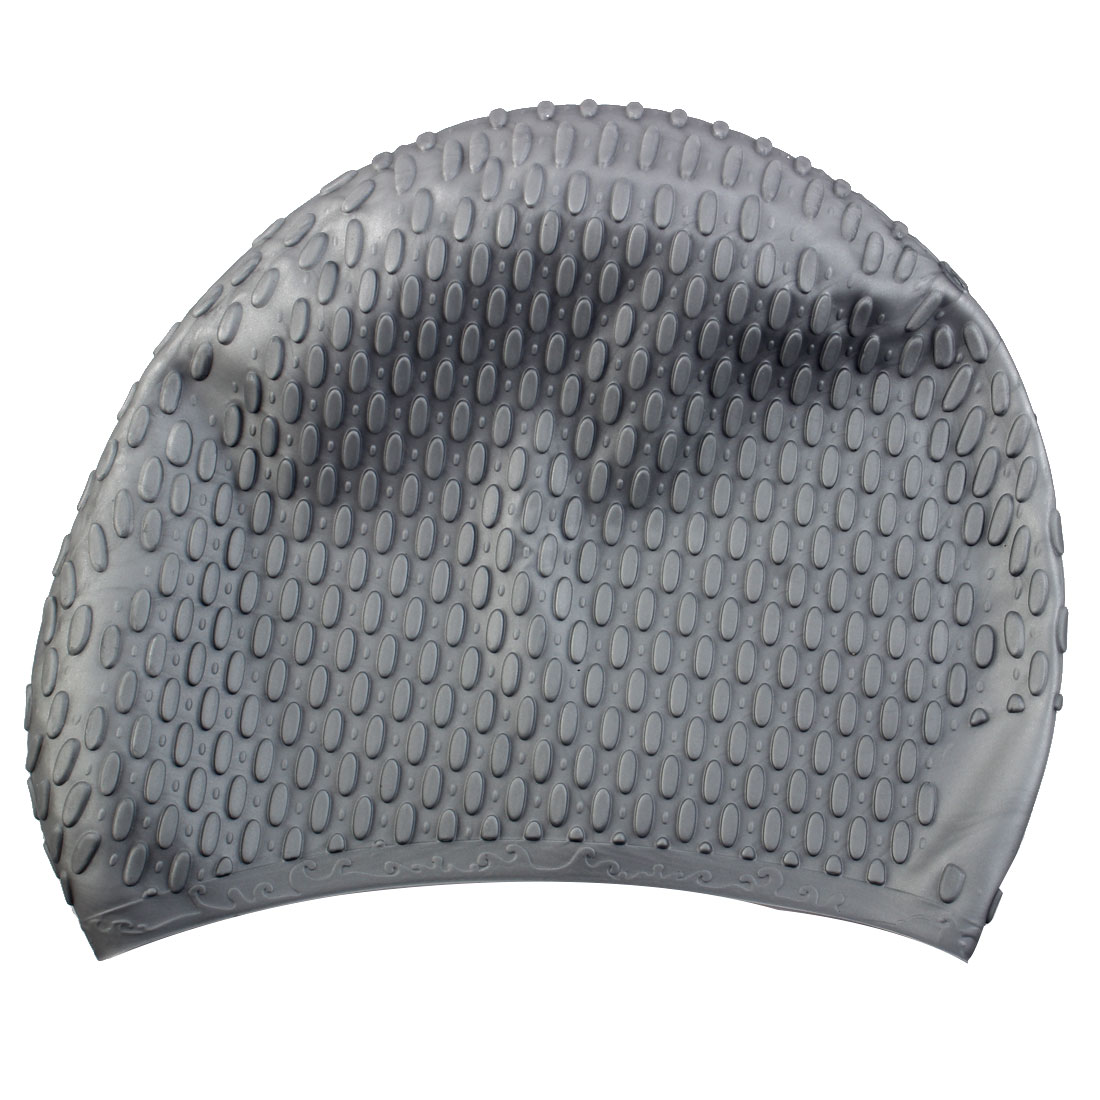 Adult Unisex Silicone Dome Shape Anti-slip Elastic Swimming Cap Underwater Bathing Hat Gray